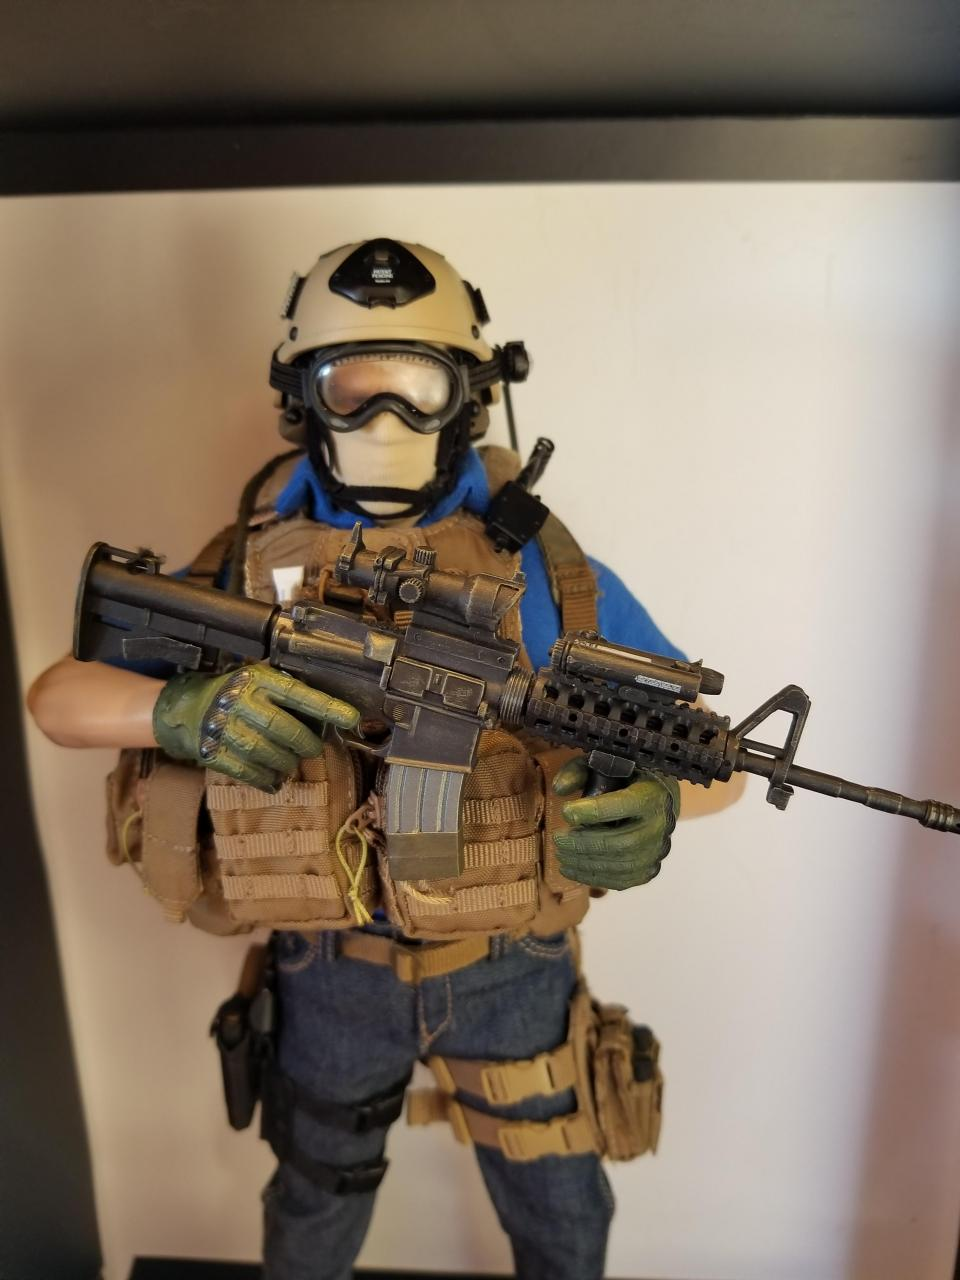 Modern Warfare 2 - Task Force 141 operative in urban wear (pic heavy)-10_-_usdqmyx[1]-jpg